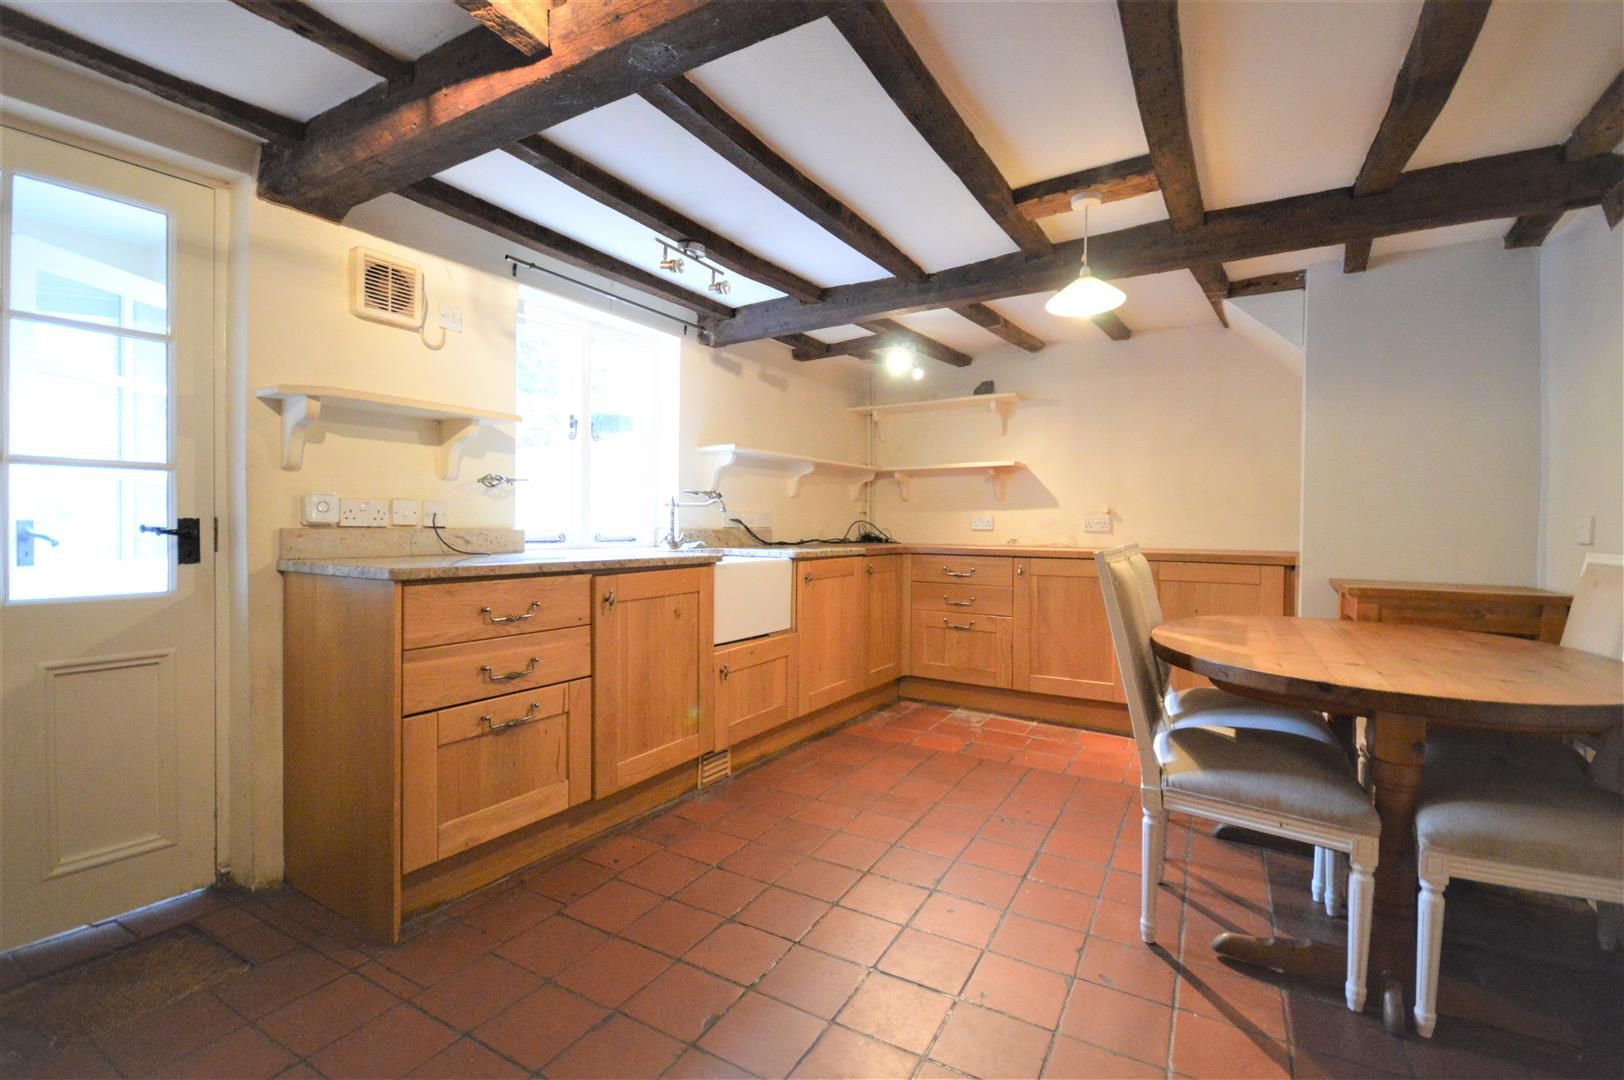 4 bed terraced for sale in Leominster  - Property Image 2